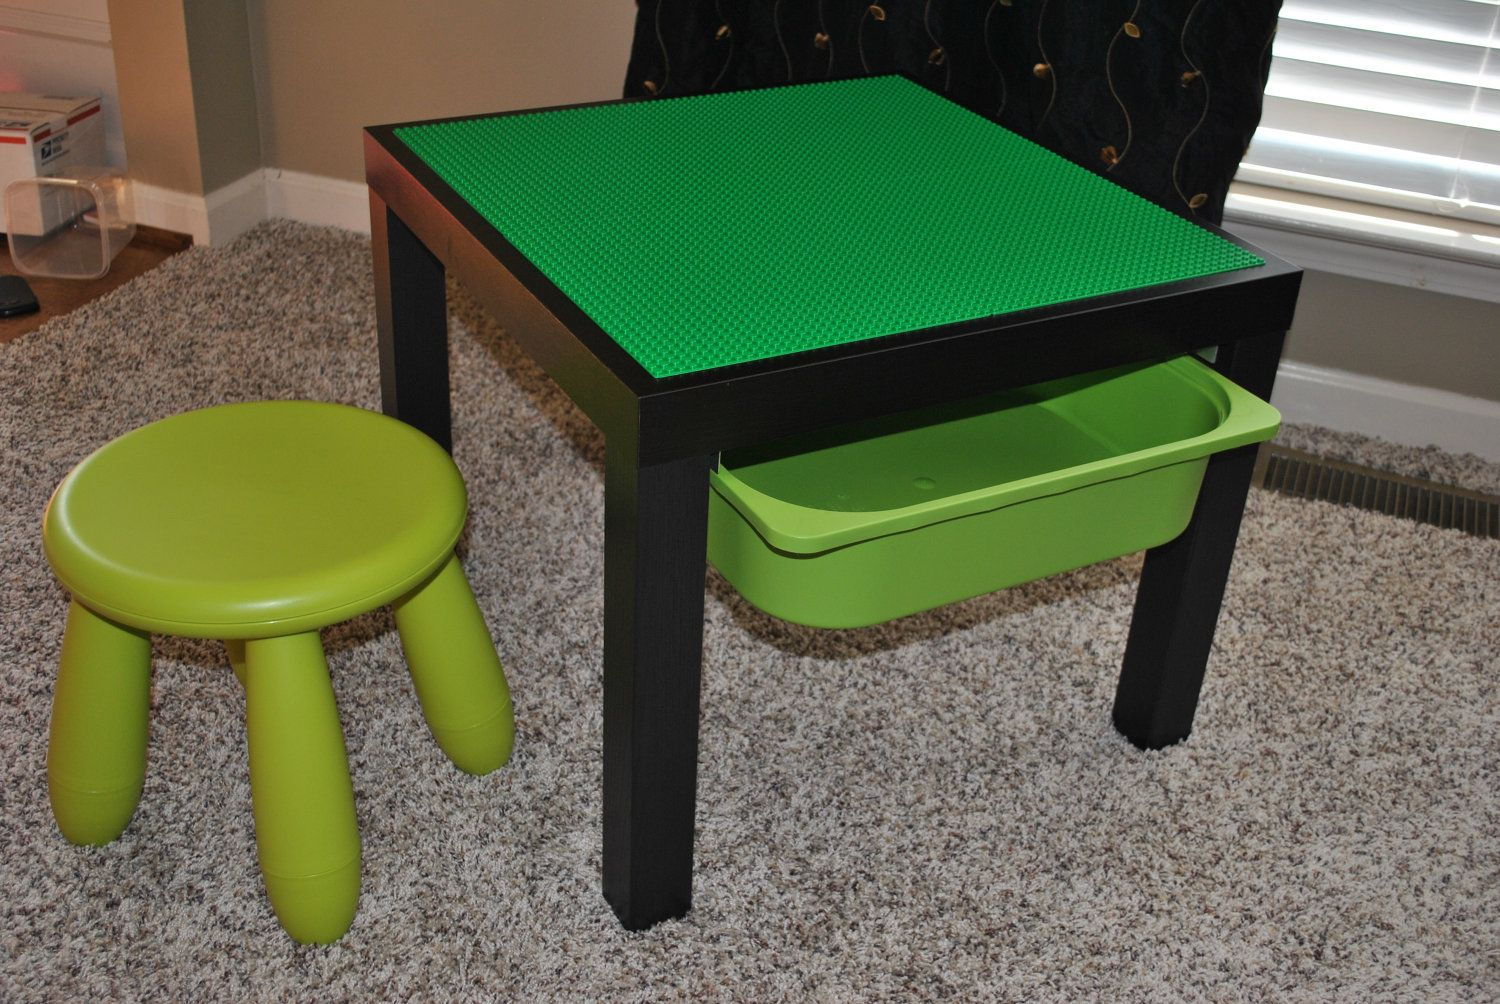 Custom Made Lego Tables With Stool And Storage Bin